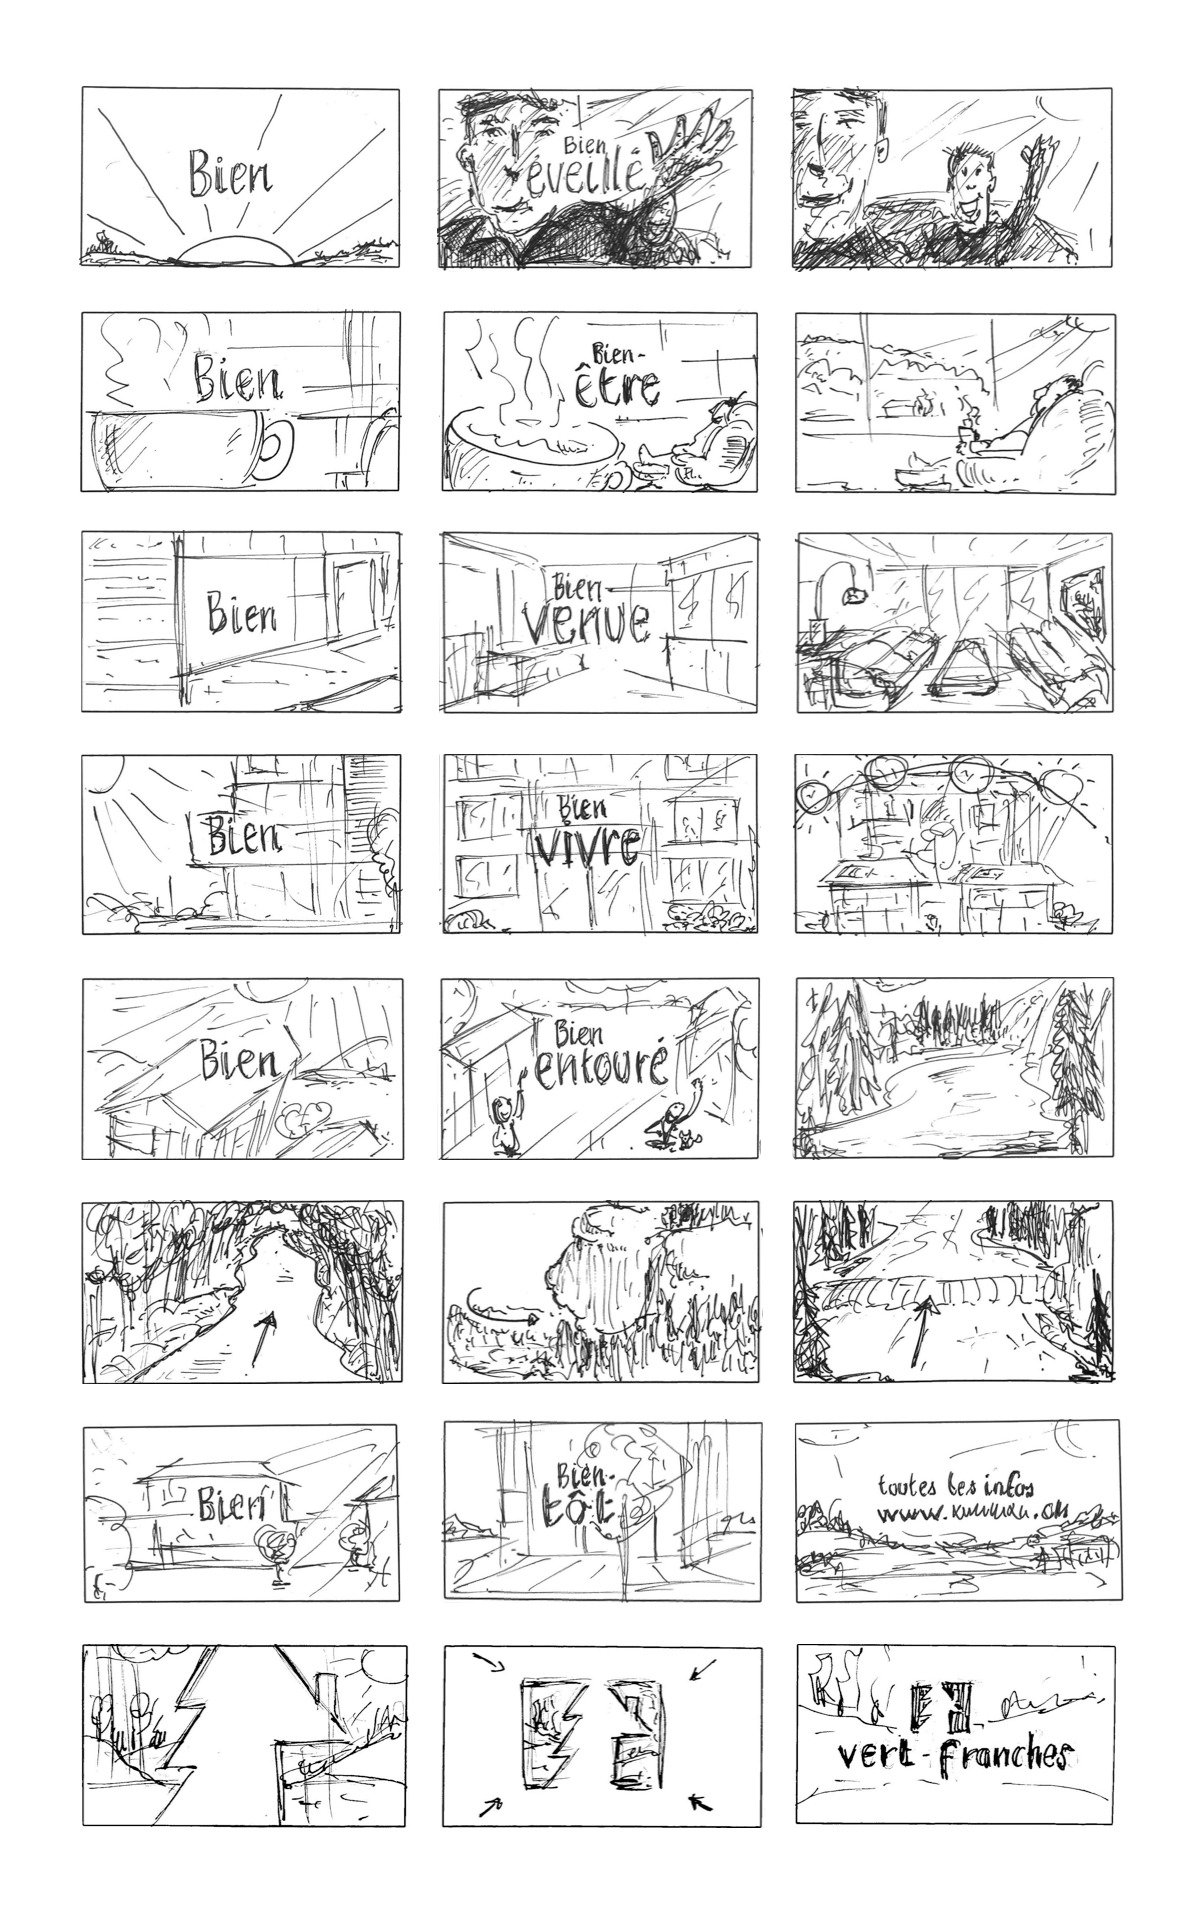 vertfranches-storyboard-enigma